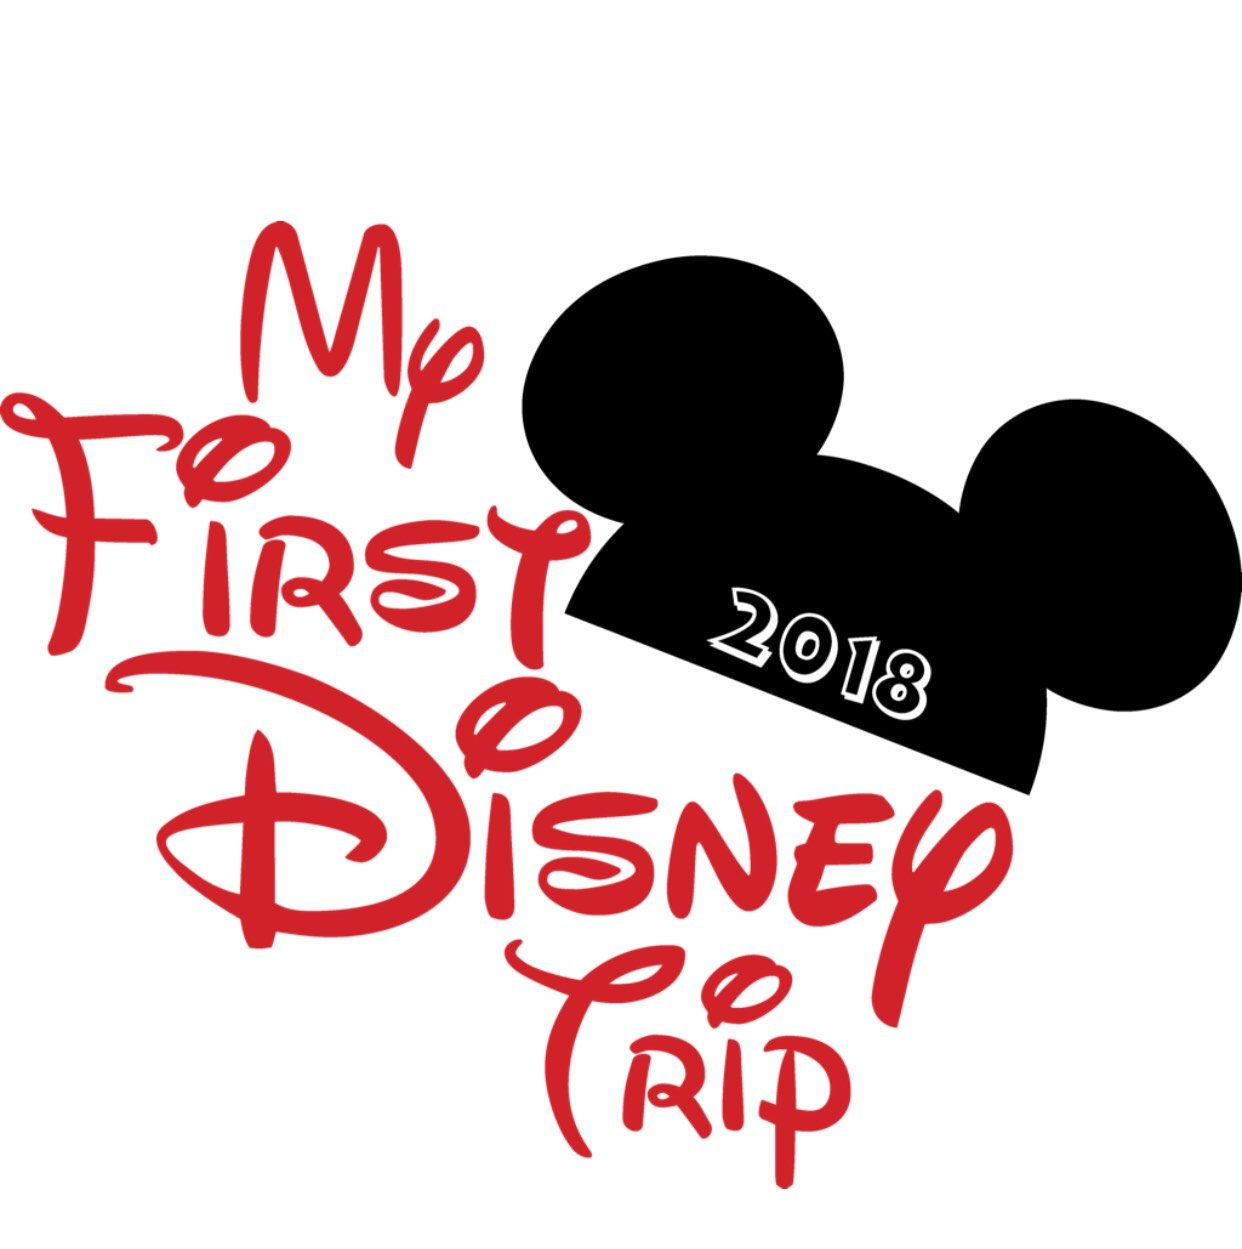 9f060854 My First Trip To Disney .svg file for Cricut and Silhouette by  ElysianbyMarysela on Etsy